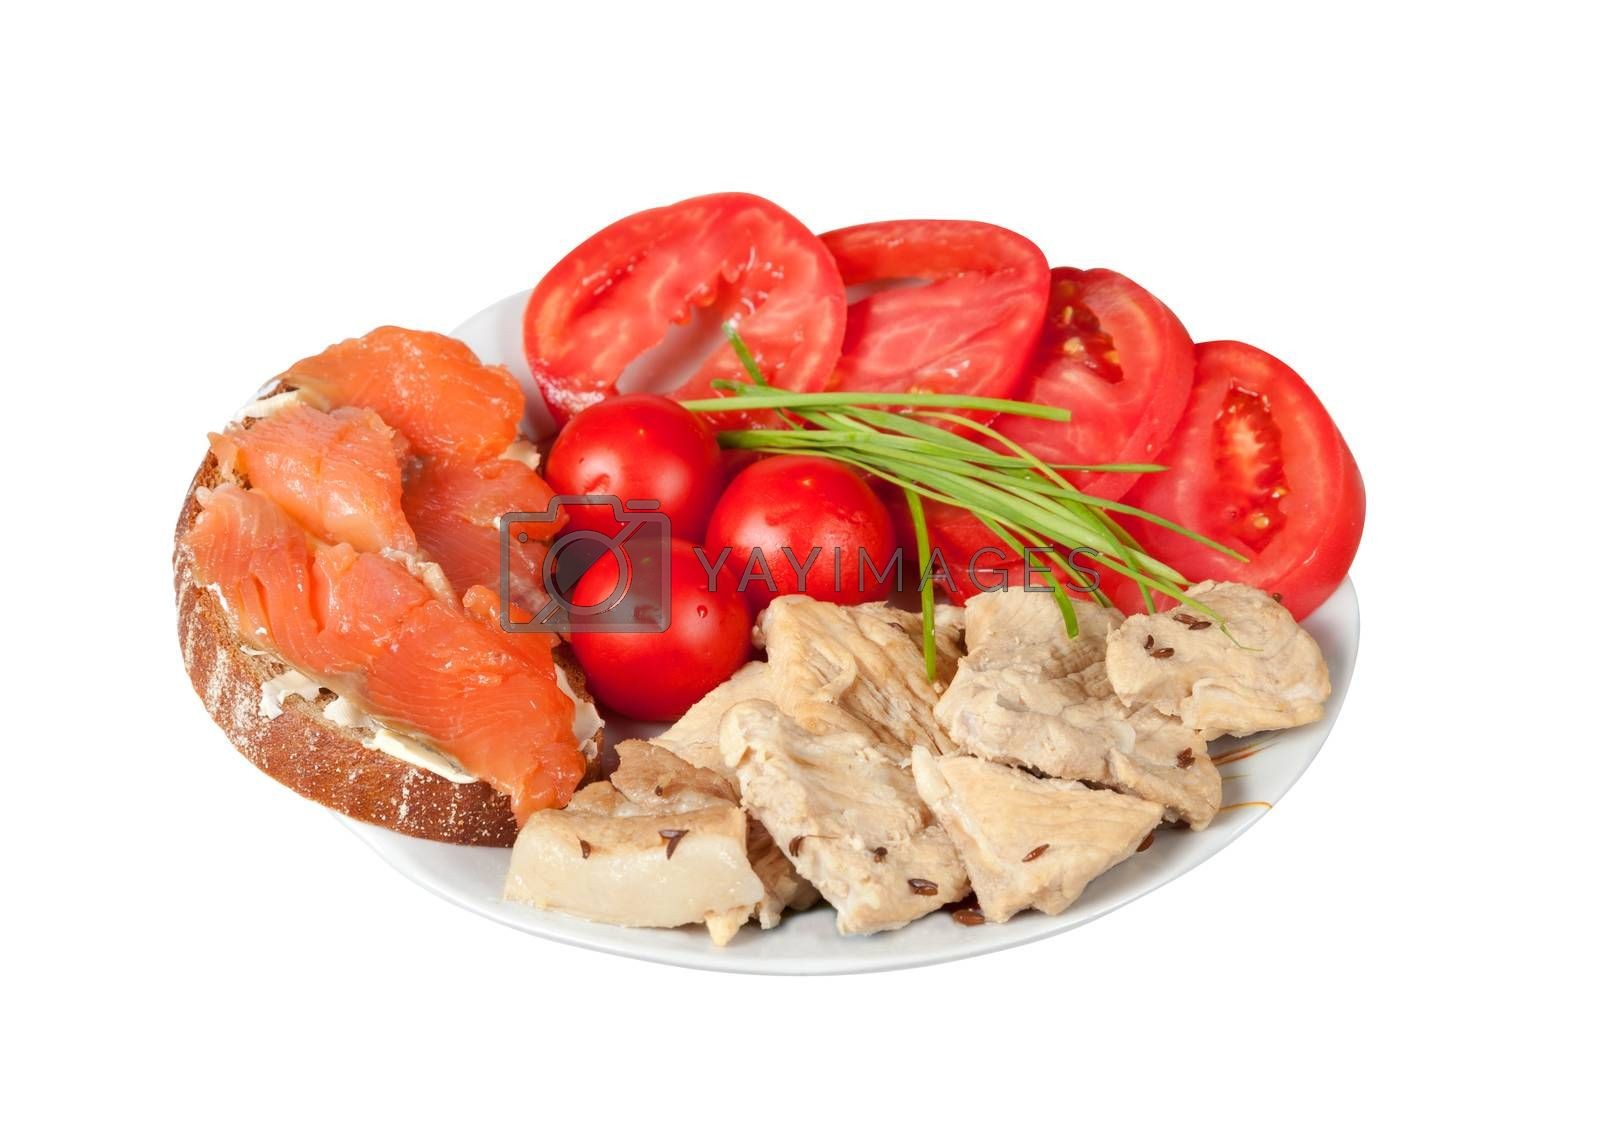 Fish, meat and tomatoes, correct balanced meal for athletes. Isolated on white. side view